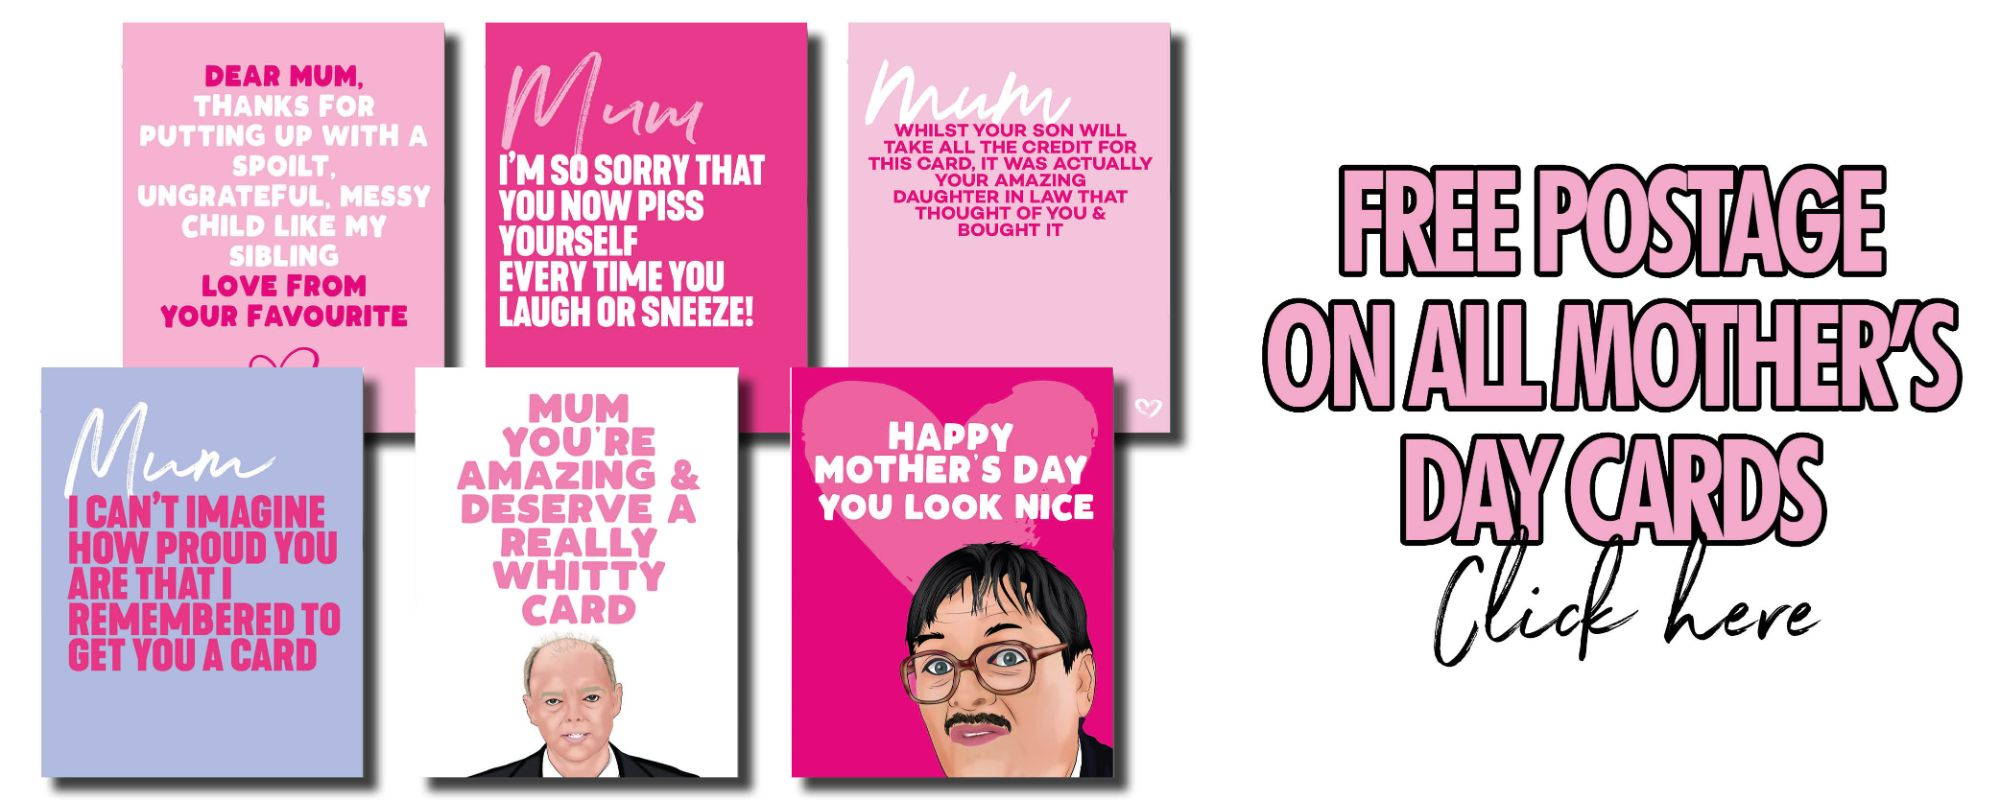 MOTHERS DAY 2021 CARDS